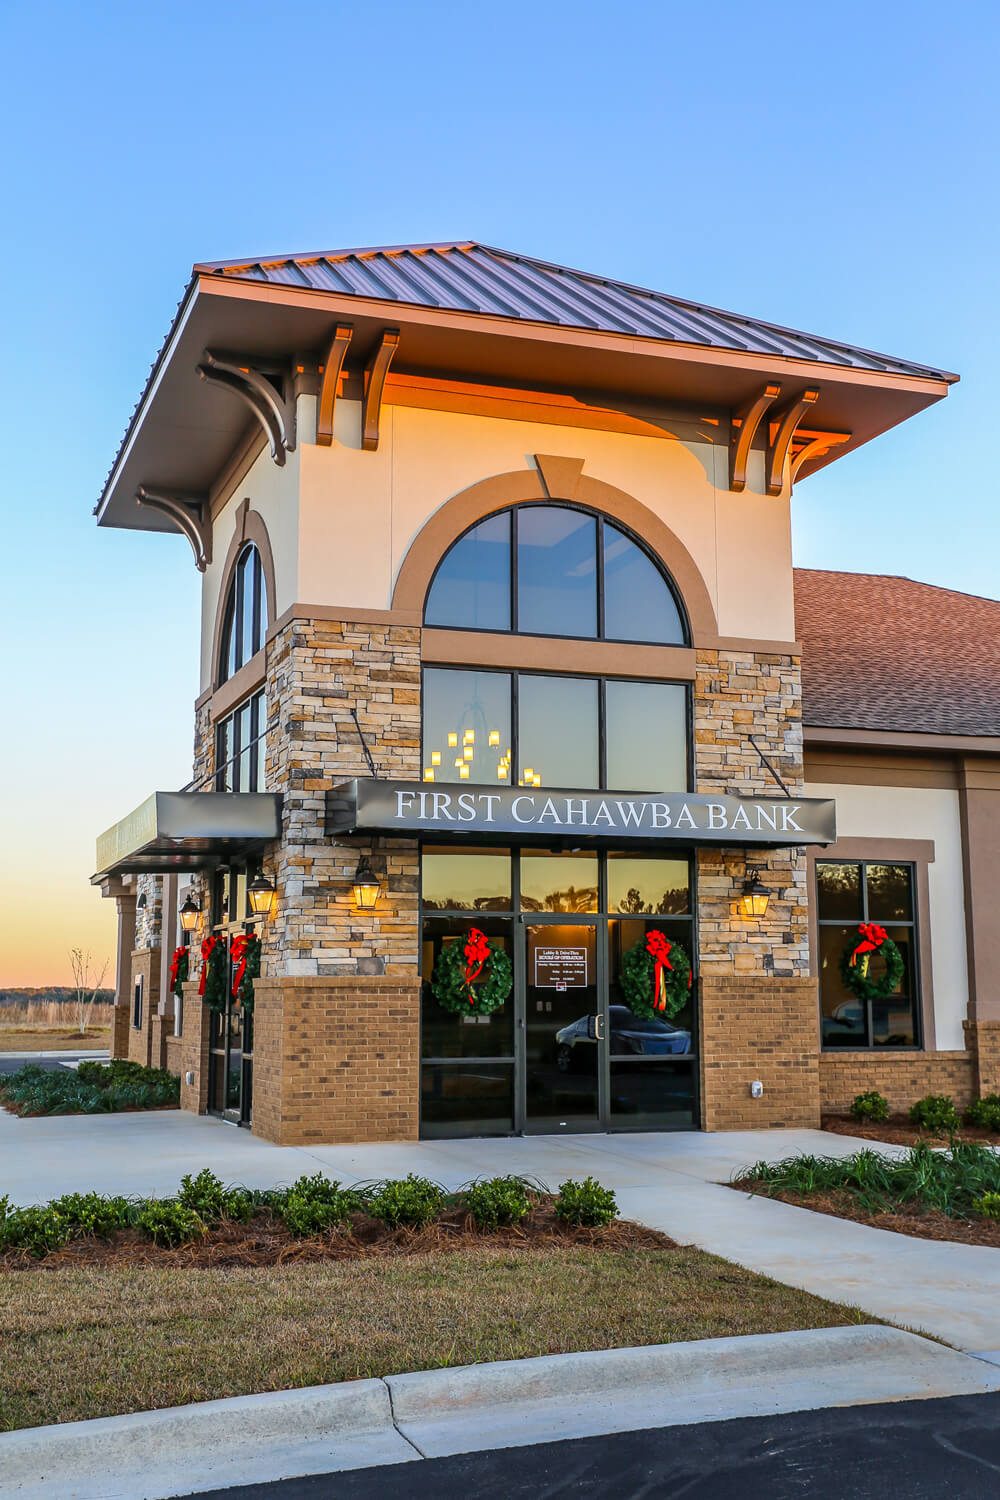 First Cahawba Bank - Entry Tower - Designed by Foshee Architecture